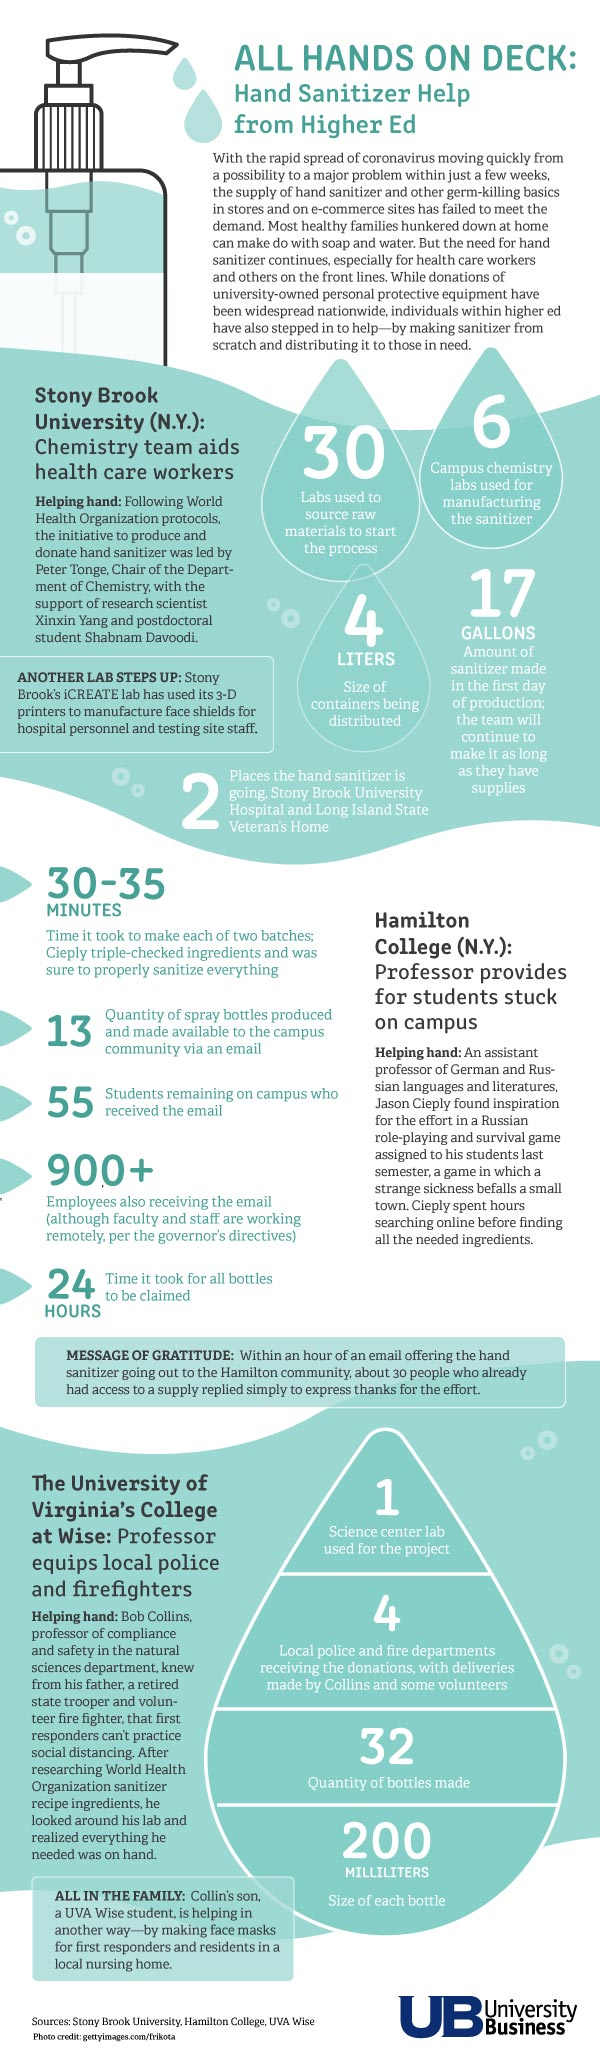 ALL HANDS ON DECK—Hand sanitizer help from higher ed <br /> (click on infographic to enlarge)